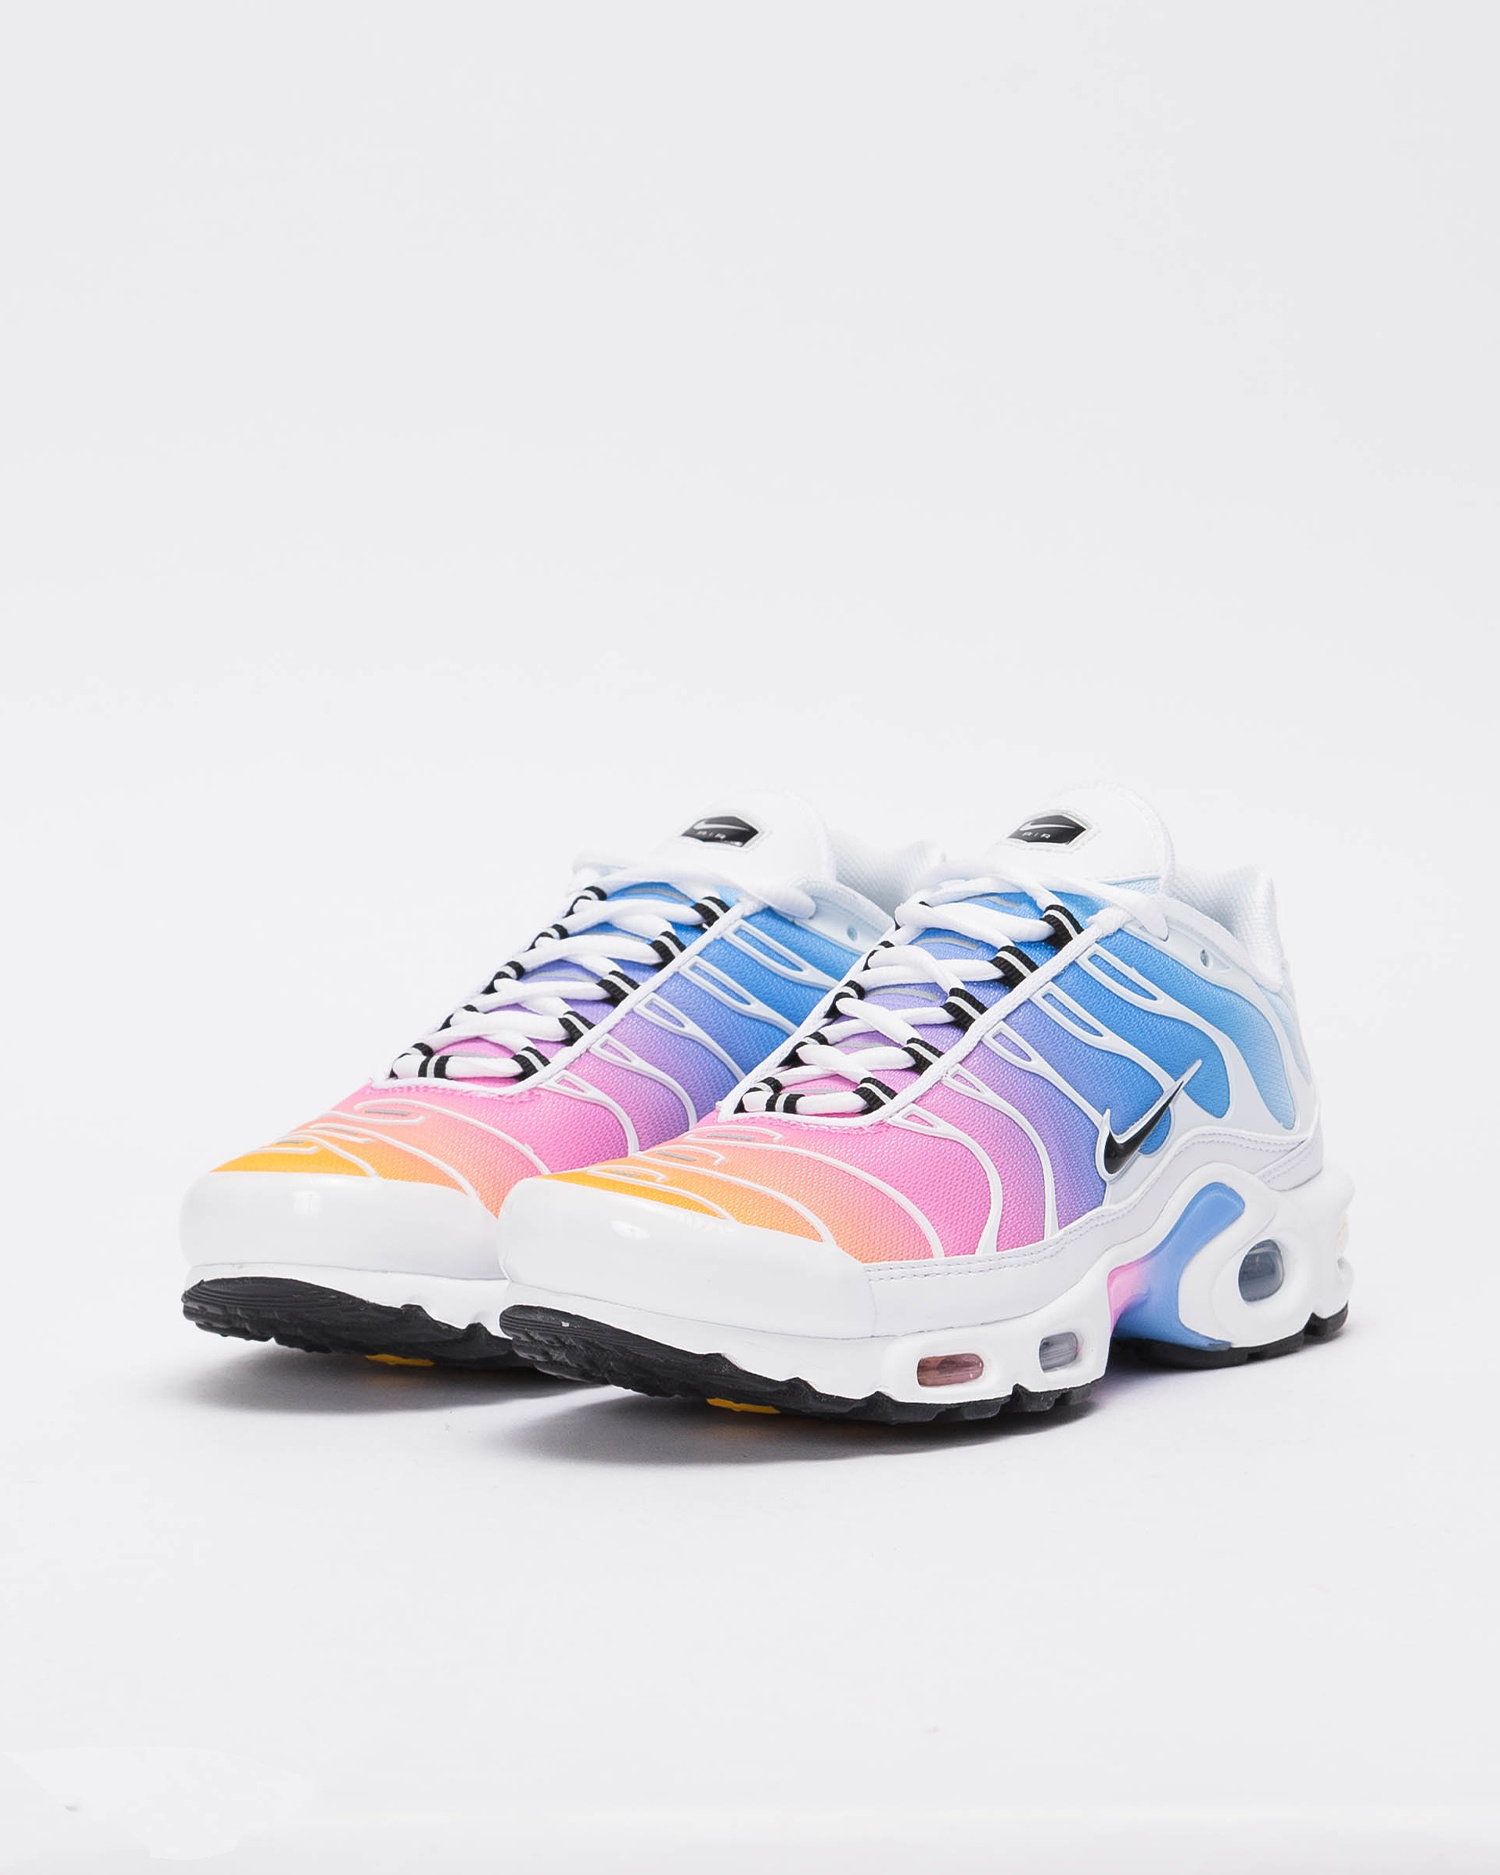 reputable site 03bee d54ed W Nike Air Max Plus WHITE BLACK-UNIVERSITY BLUE-PSYCHIC PINK ...